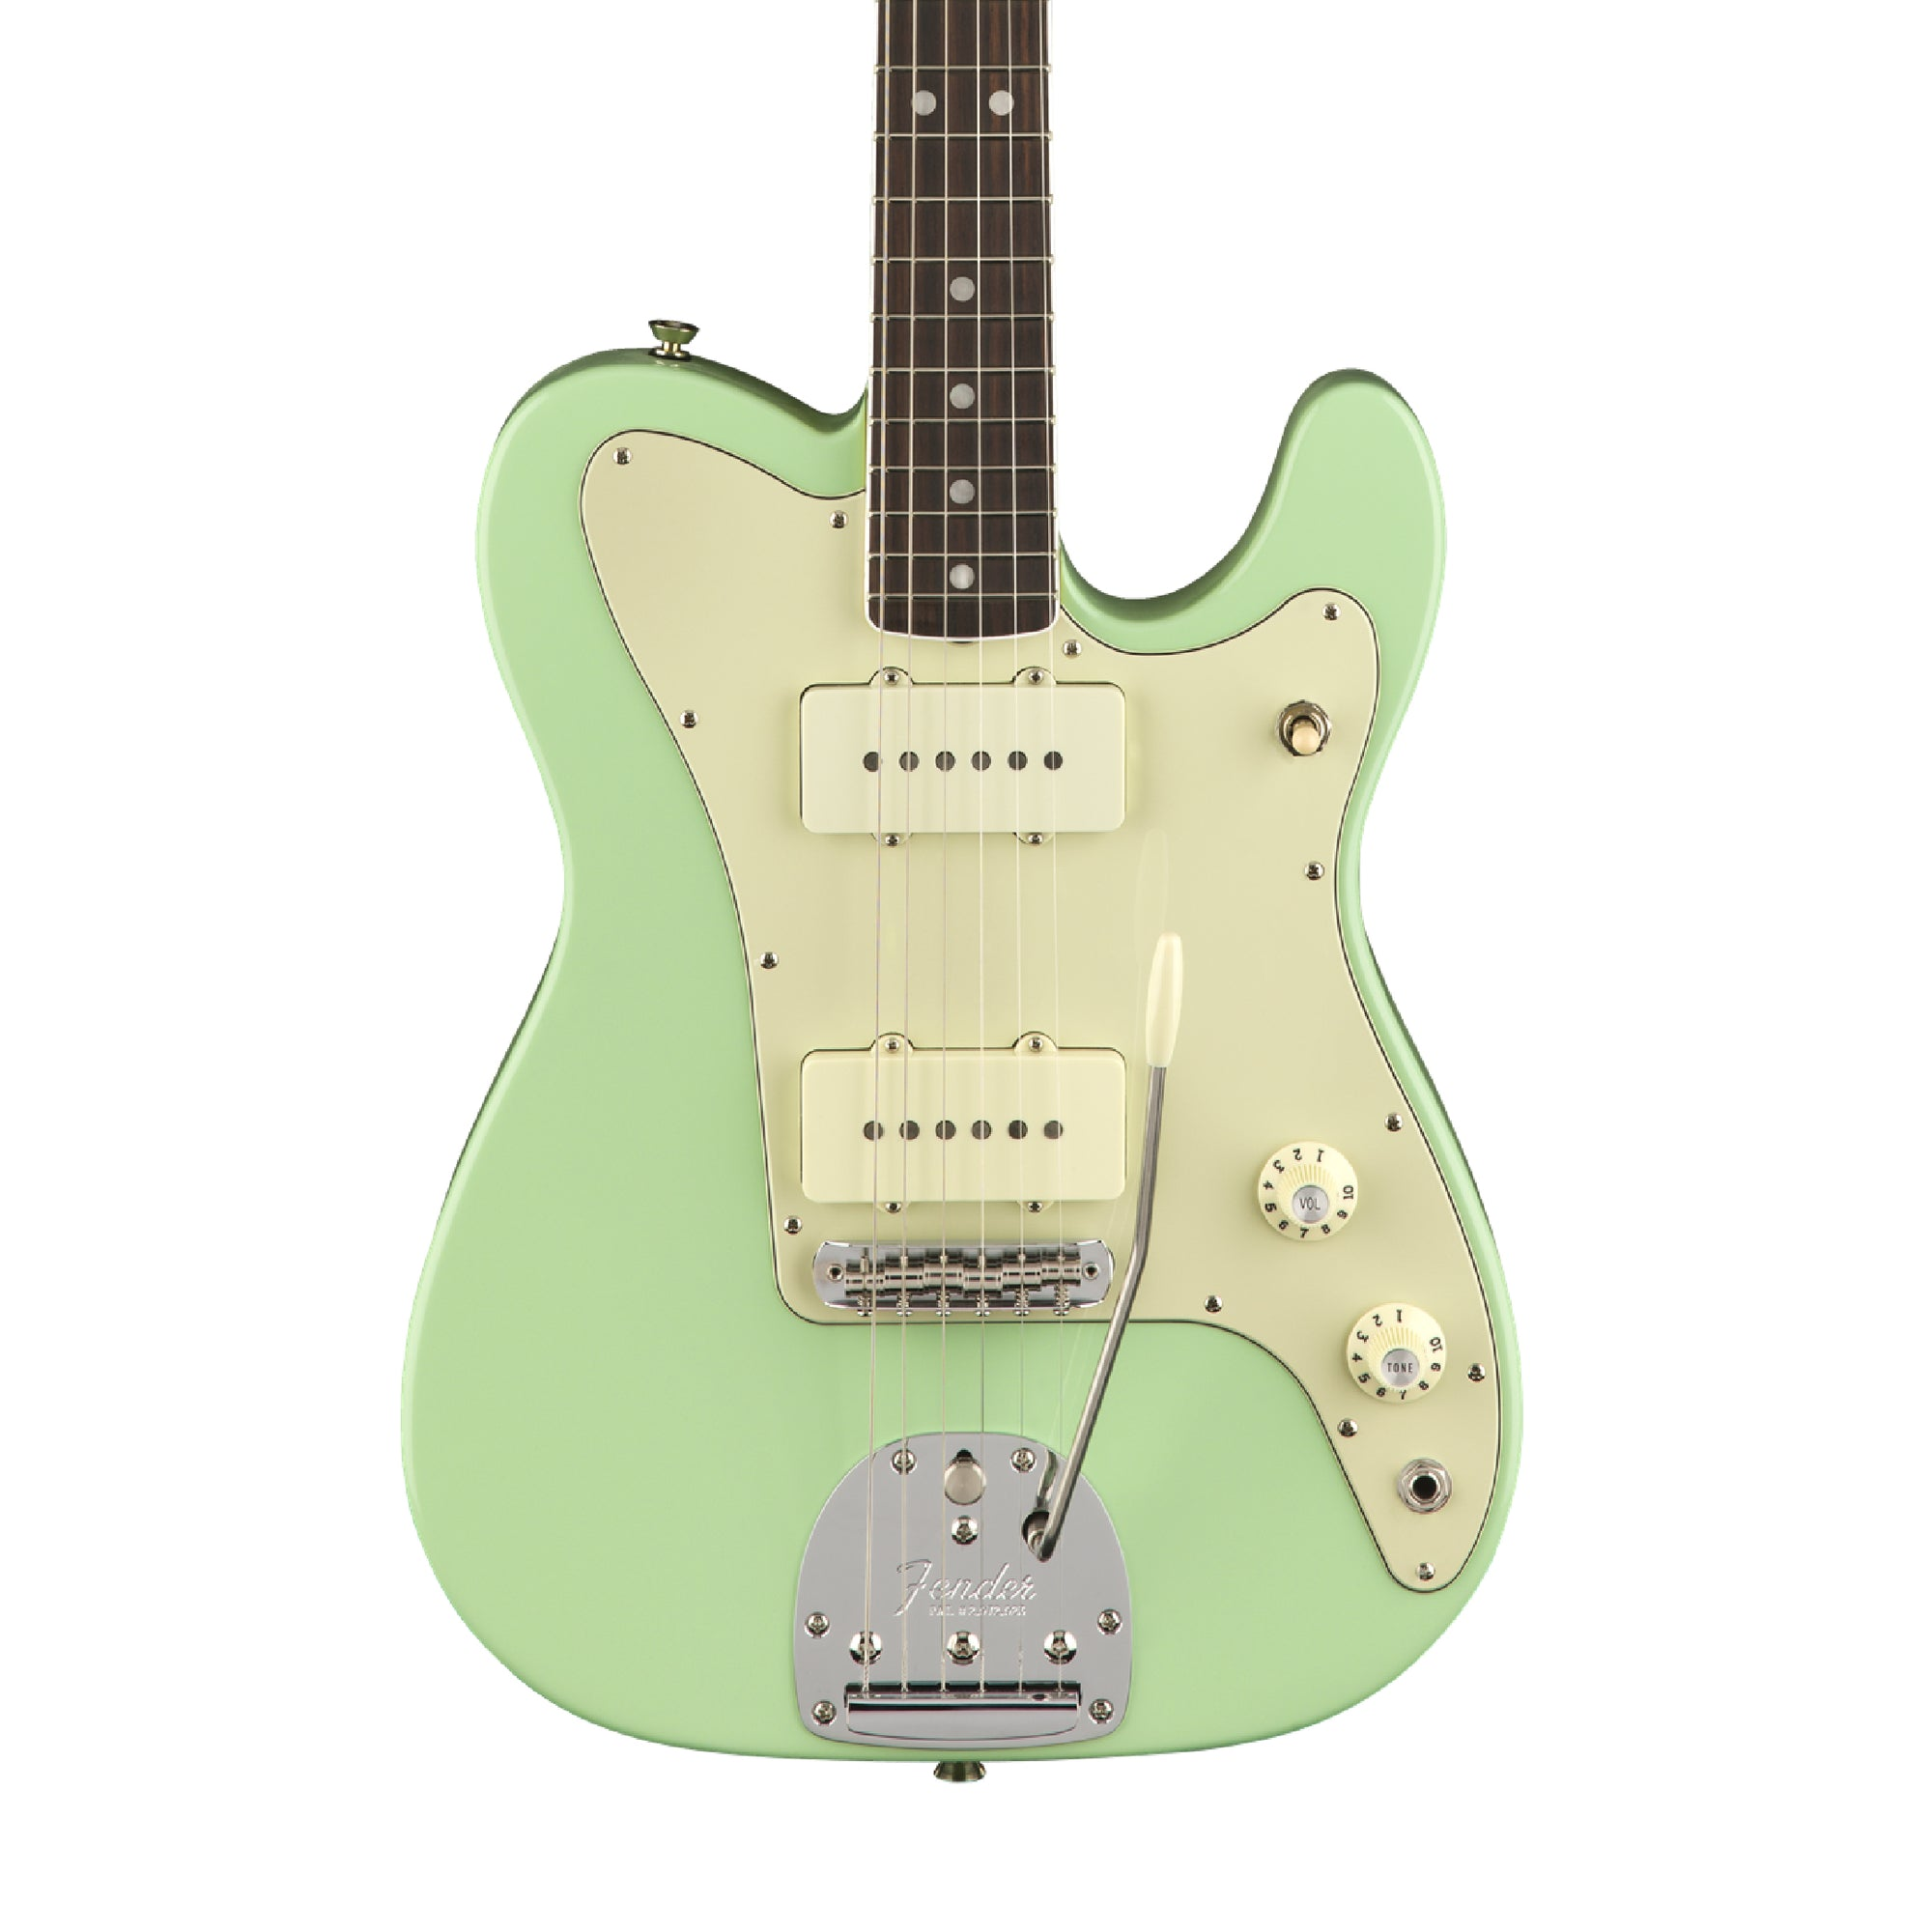 Fender Parallel Universe Jazz Tele - Surf Green (June 2018)